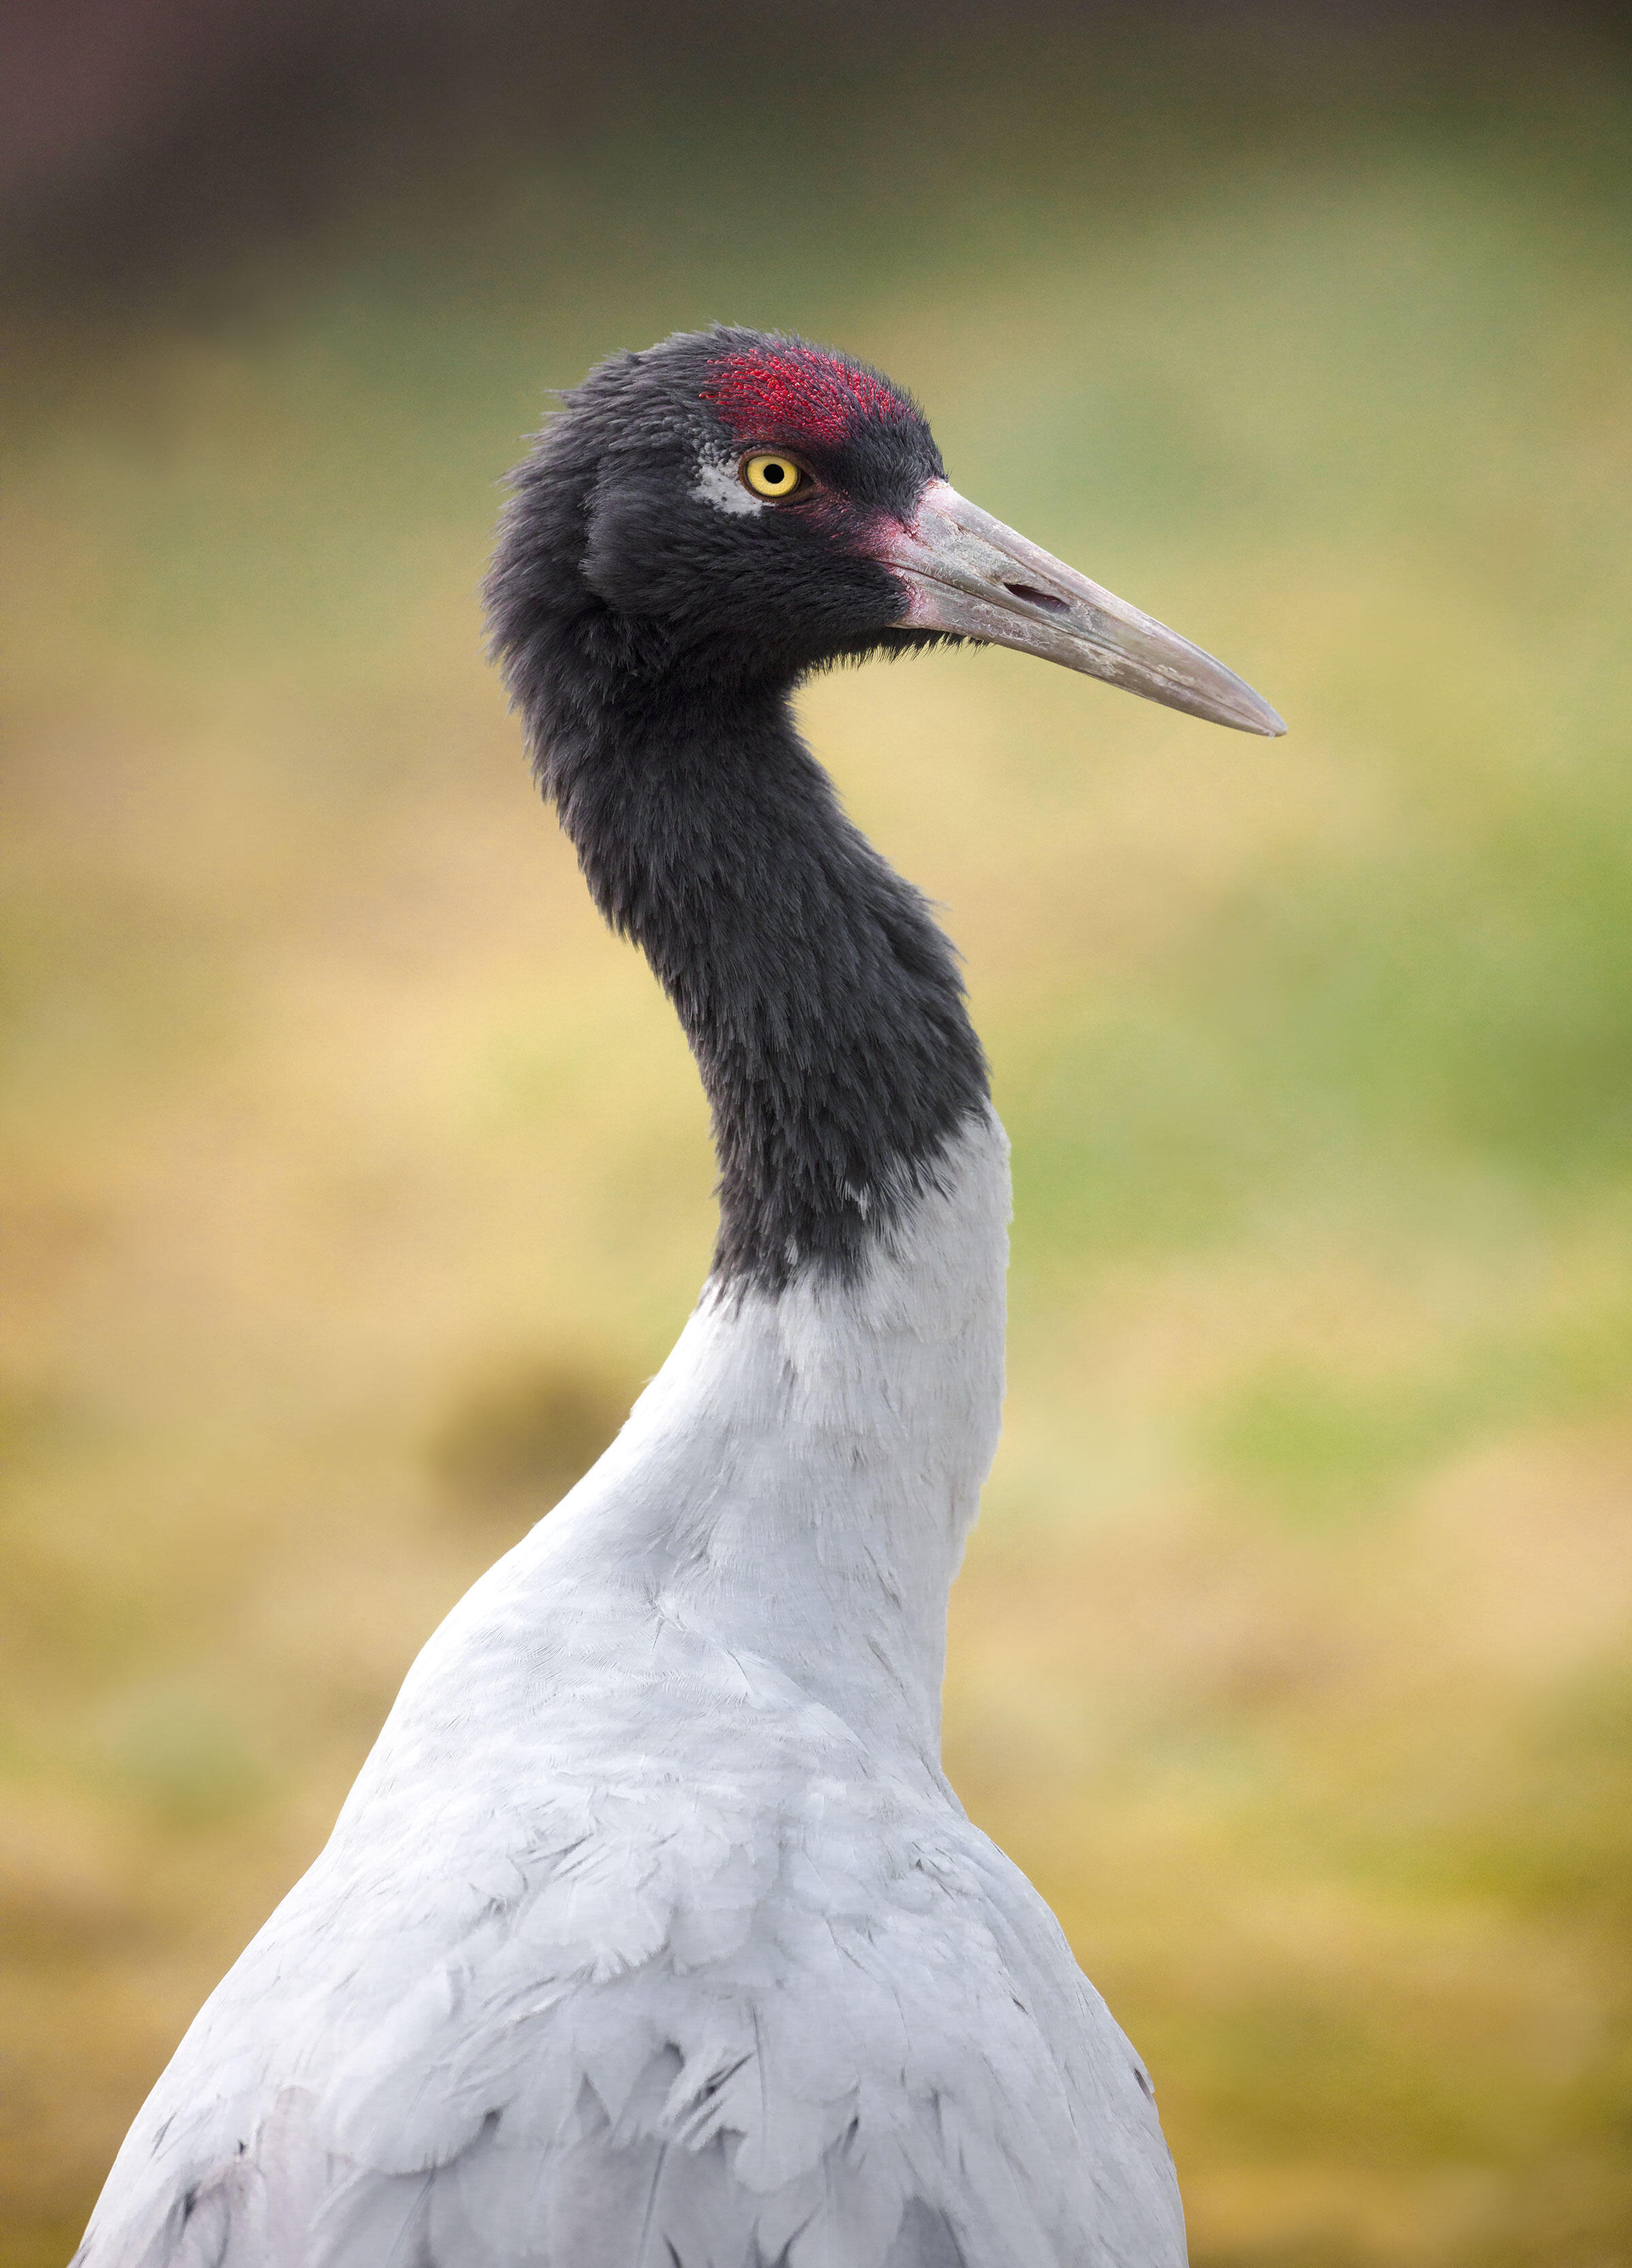 Black-necked Cranes may be large and vibrant, but they went unnoticed for a long time; ornithologists didn't discover the species until 1876 because they nest at high elevations. Around 5,000 birds survive today. Ted Thousand